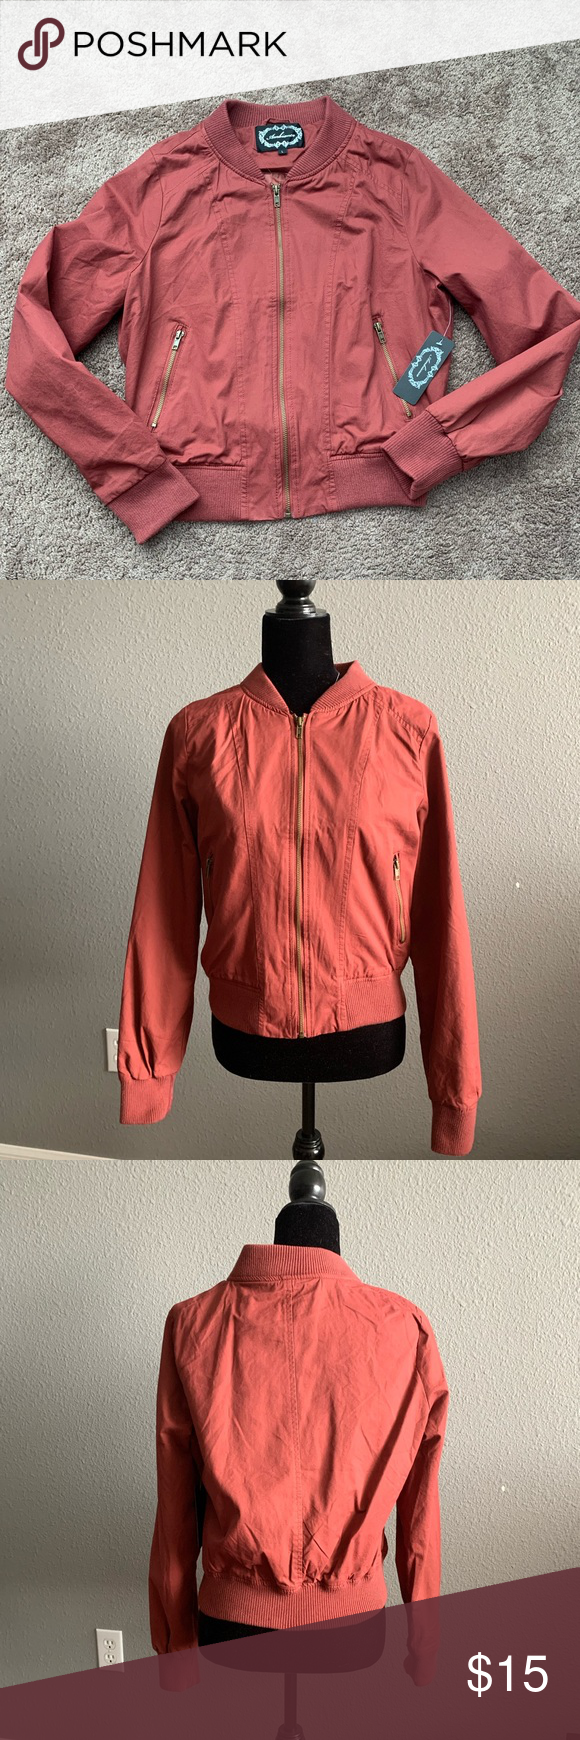 Nwt Ambiance Boutique Bomber Jacket Rose Gold Clothes Design Fashion Fashion Tips [ 1740 x 580 Pixel ]